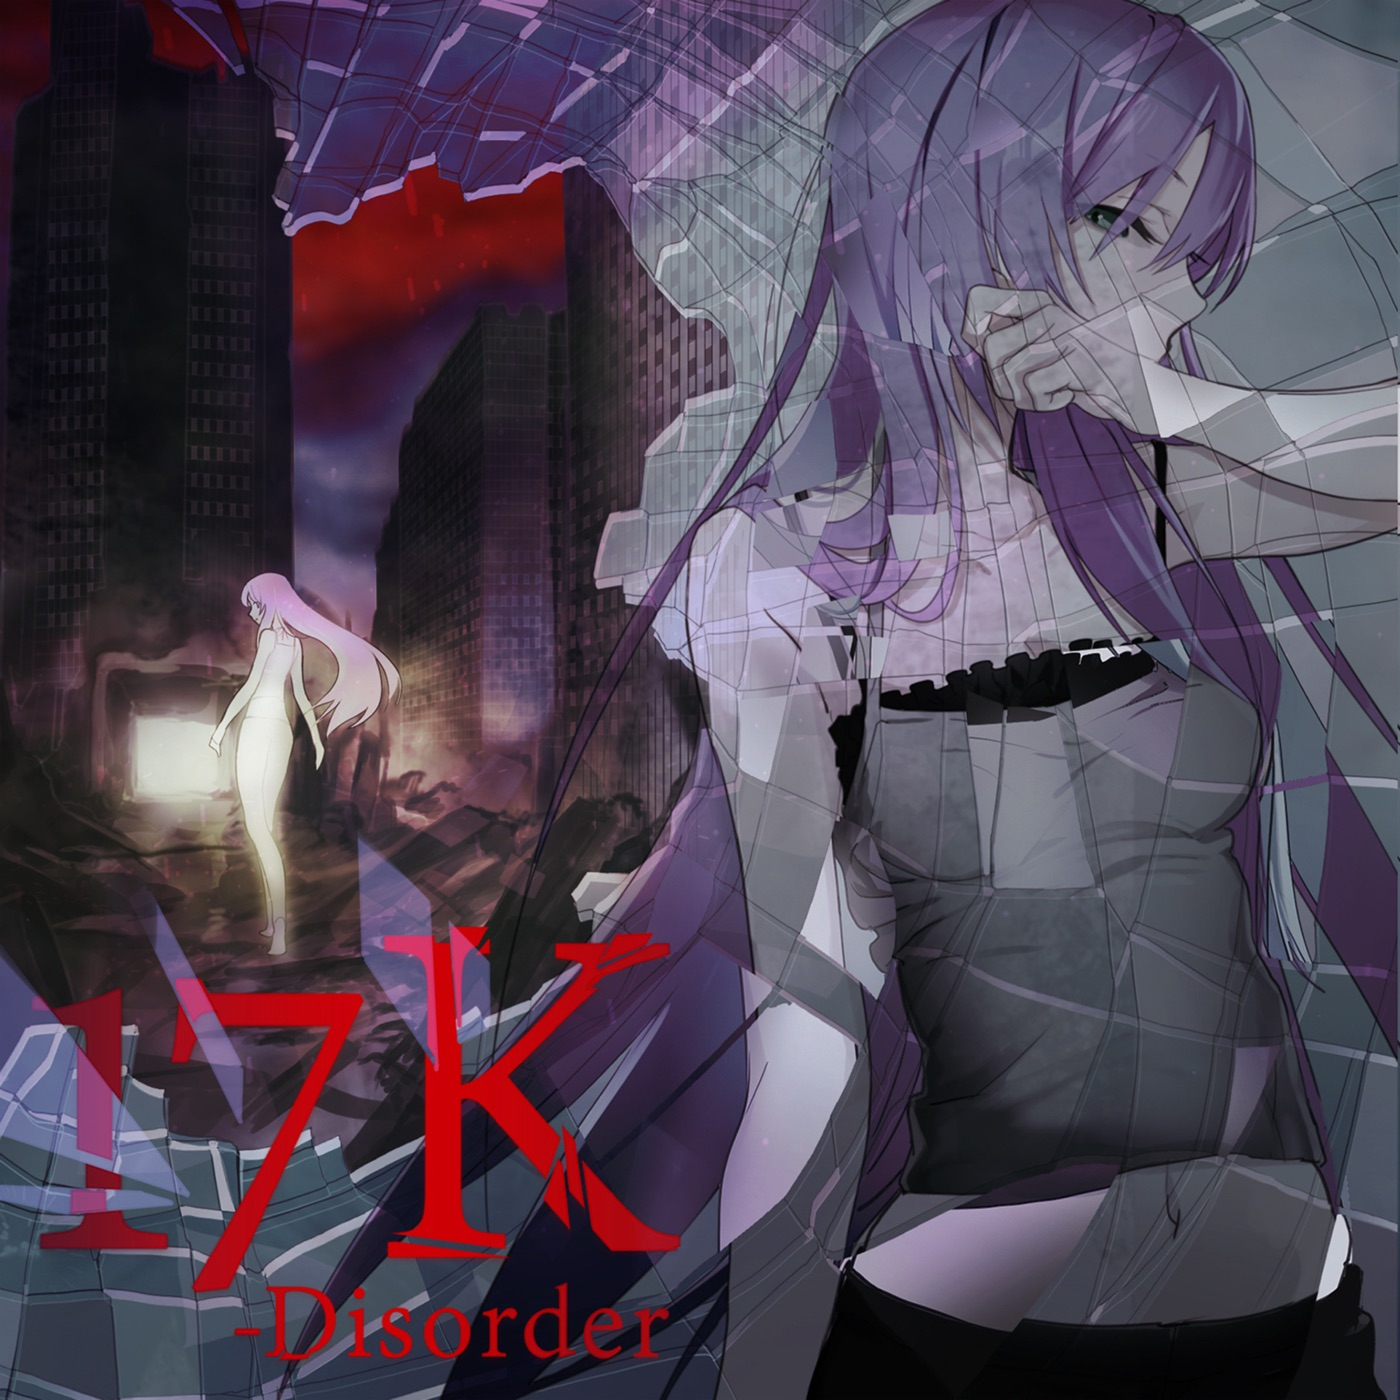 AVTechNO! - 17K -Disorder - Single